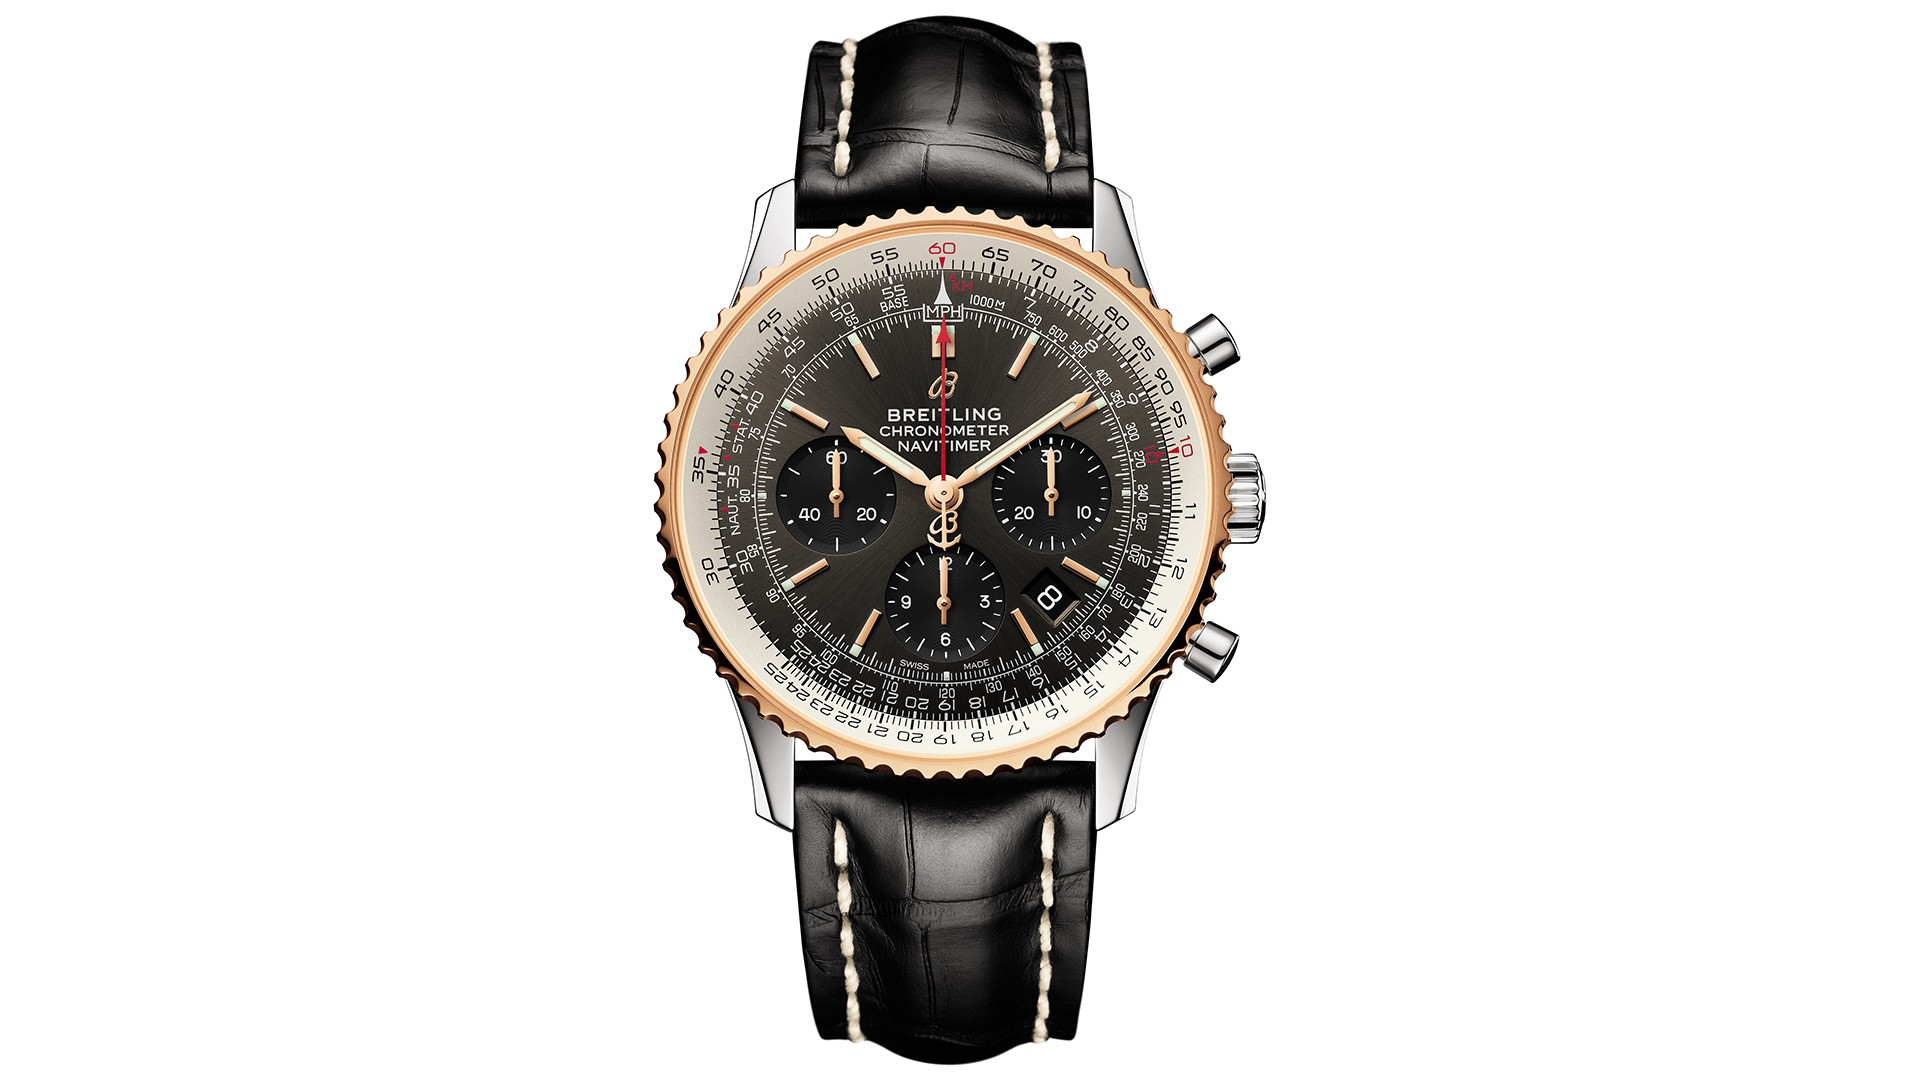 Breitling Navitimer 1 Automatic 38mm watch